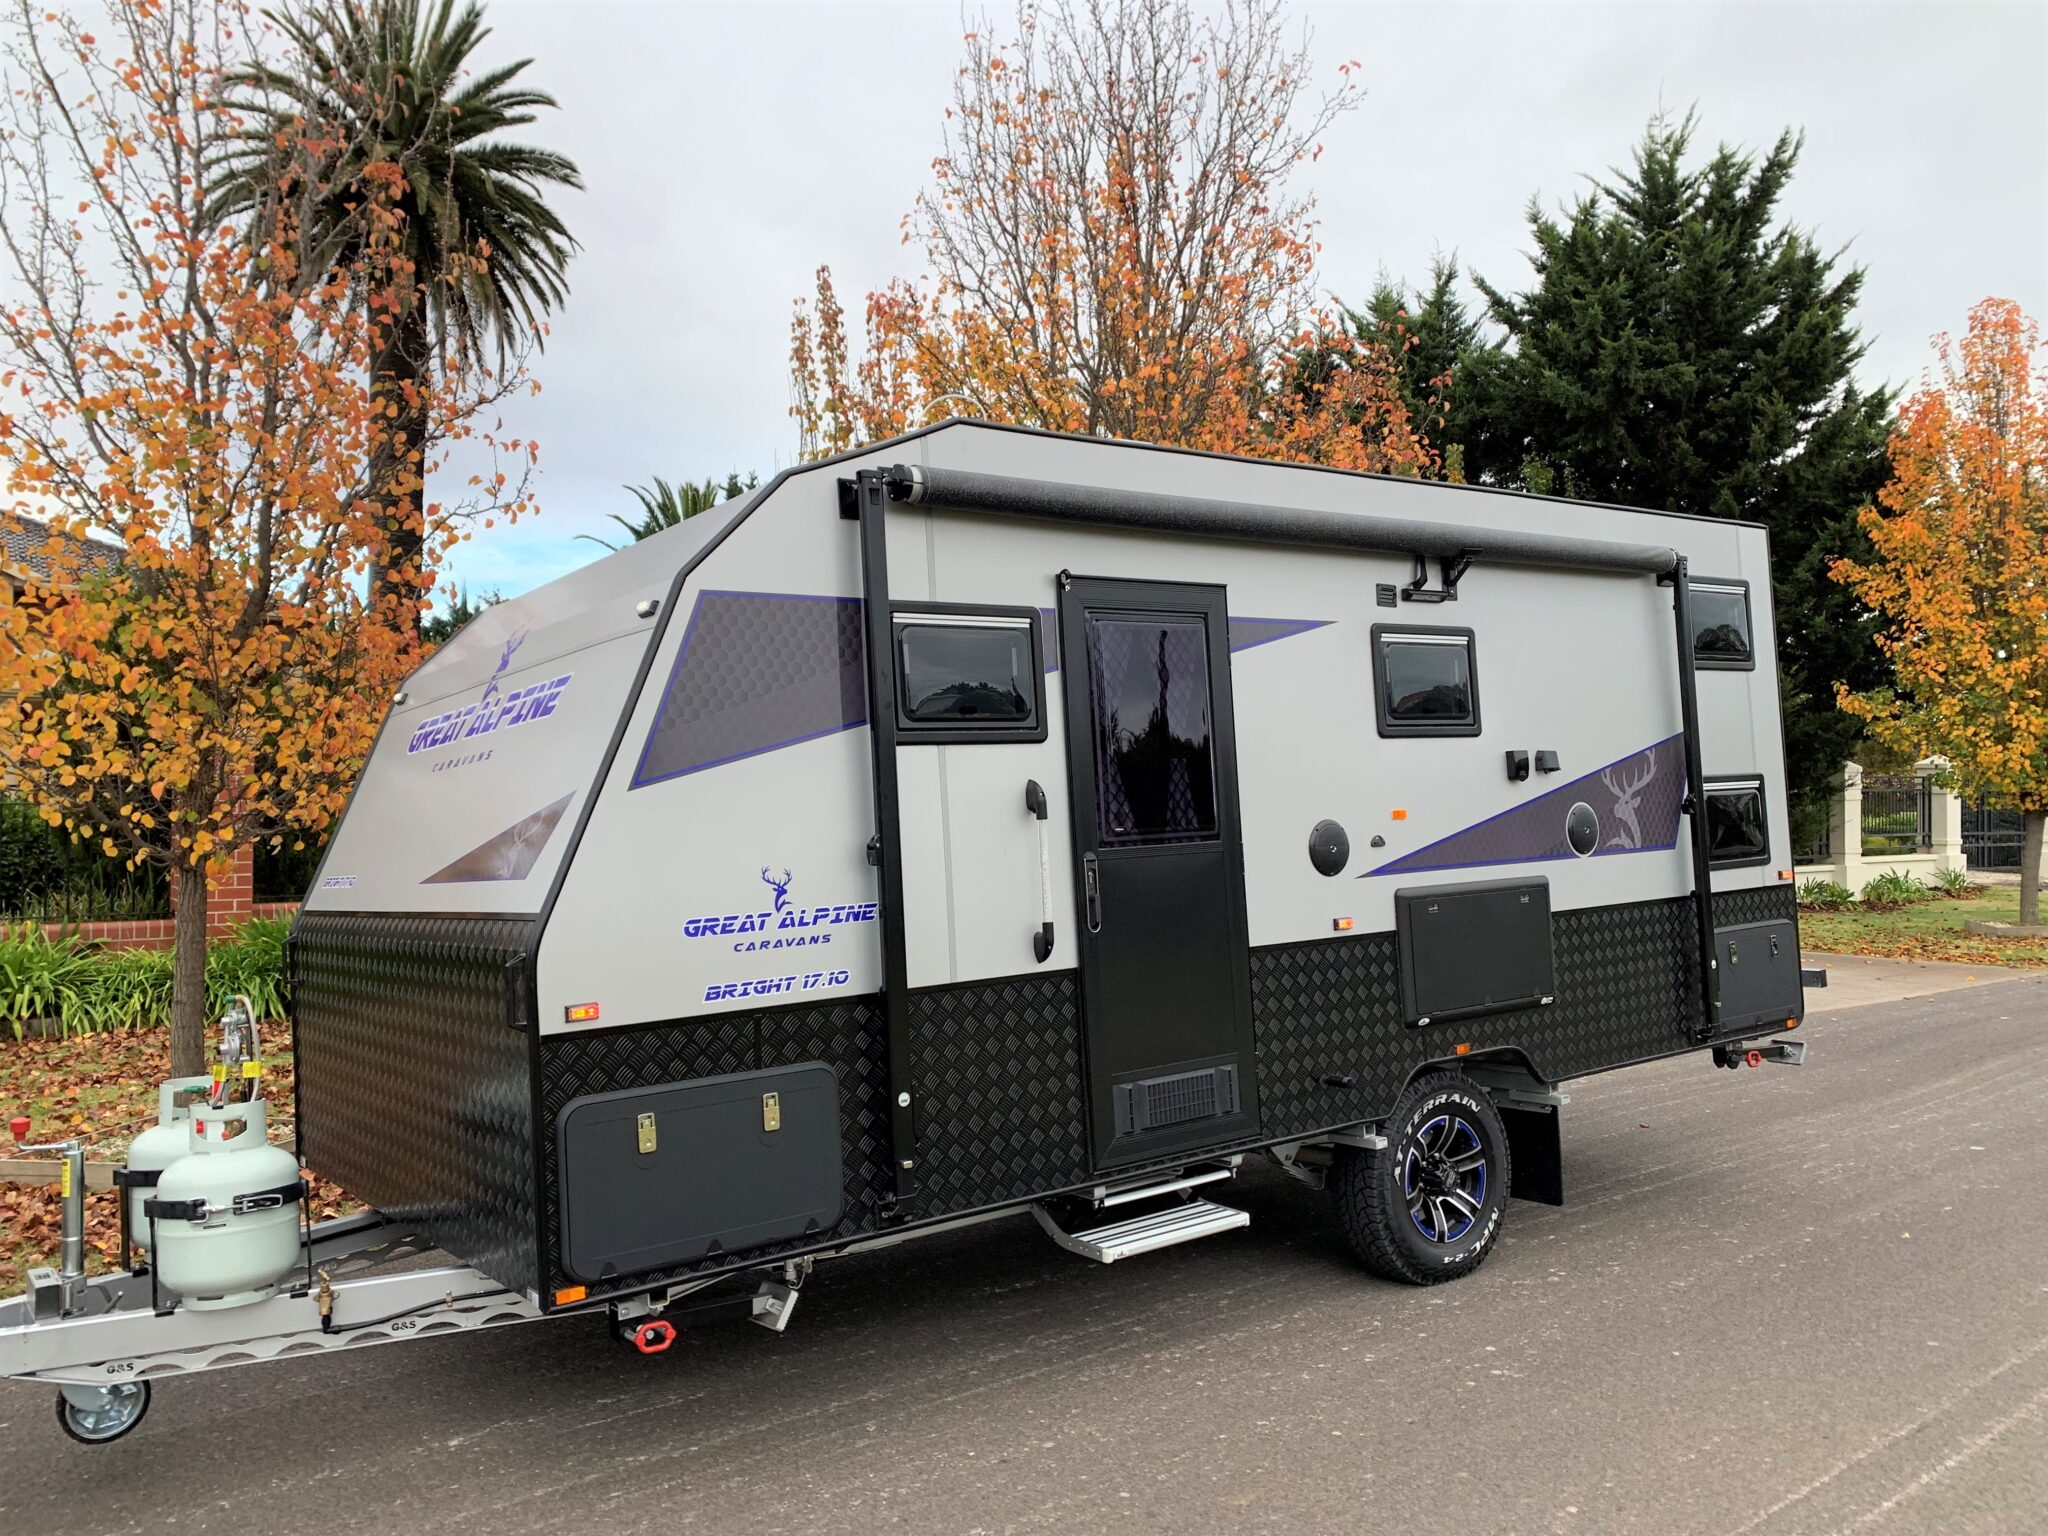 IN STOCK Brand New 2021 Great Alpine-Bright family bunk 17.10ft with full ensuite